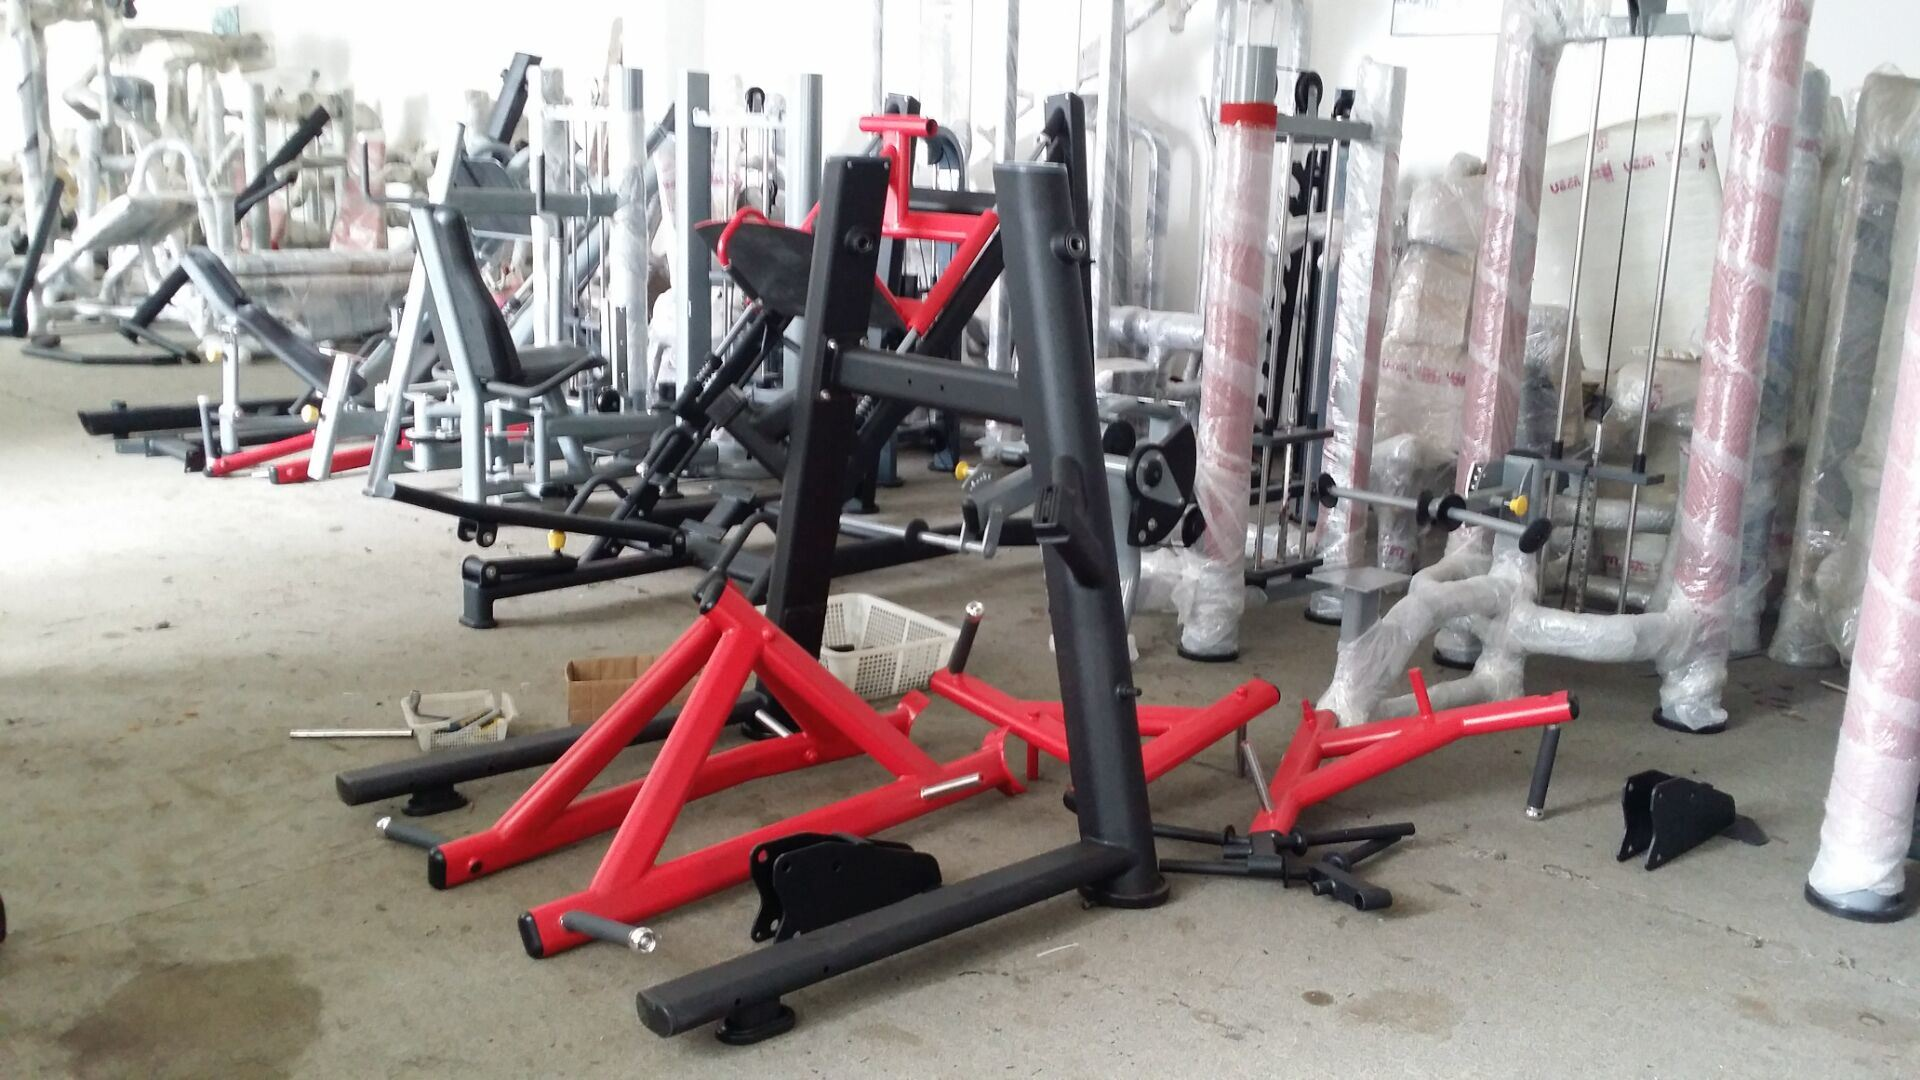 Finance your gym equipment the easy way